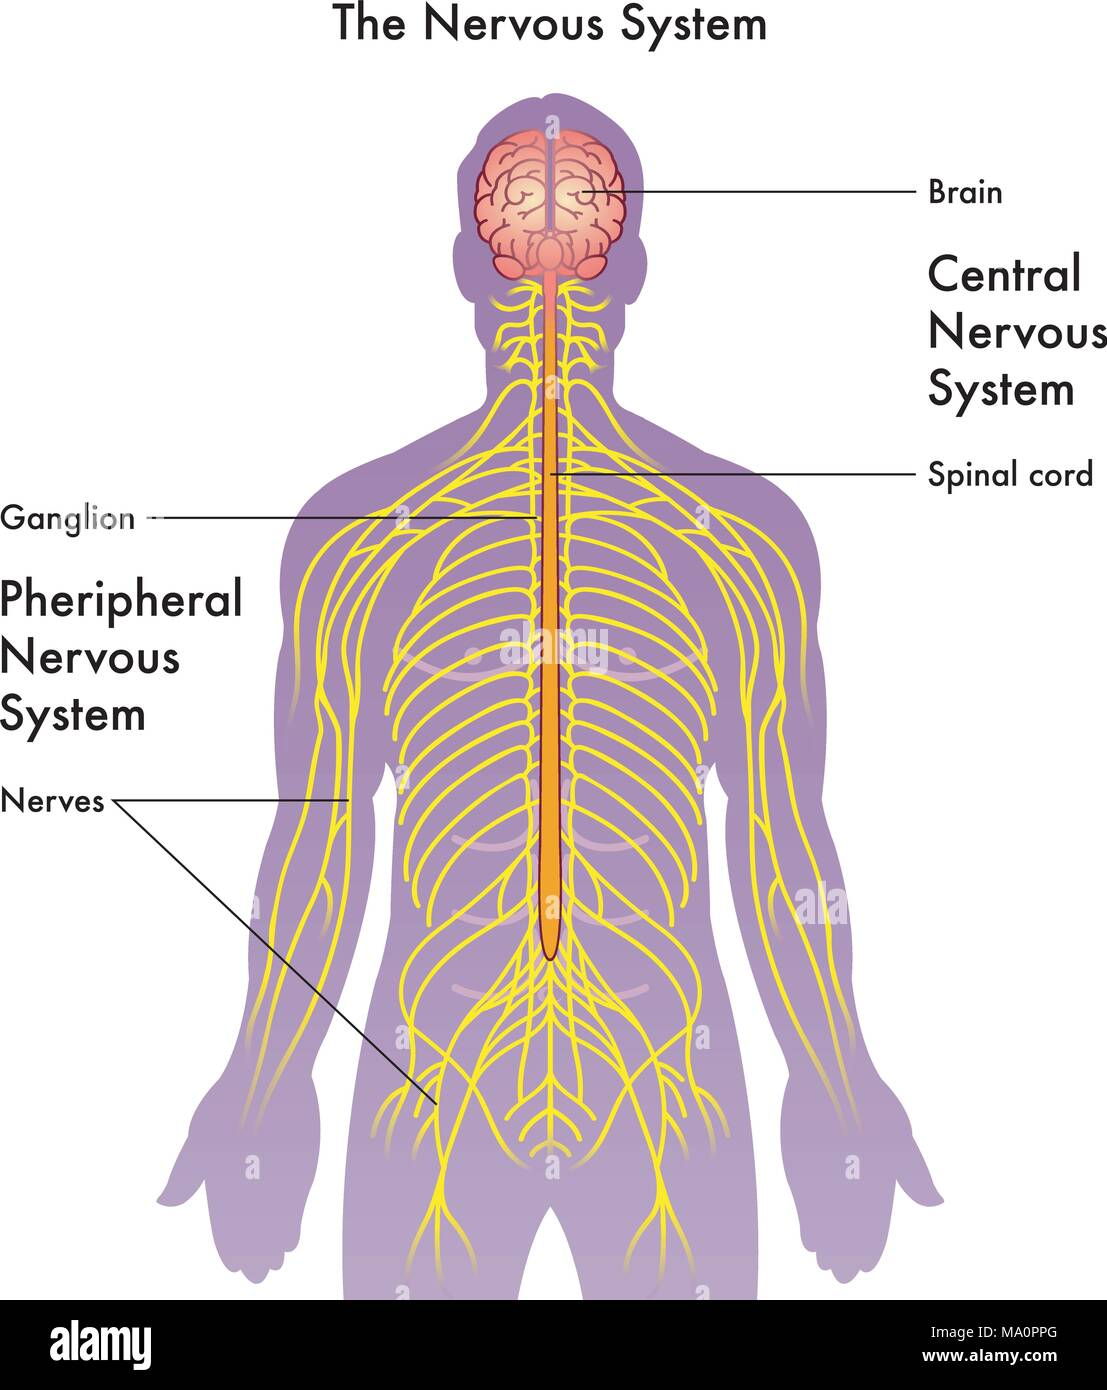 Peripheral Nervous System Drawing Stock Photos & Peripheral Nervous ...